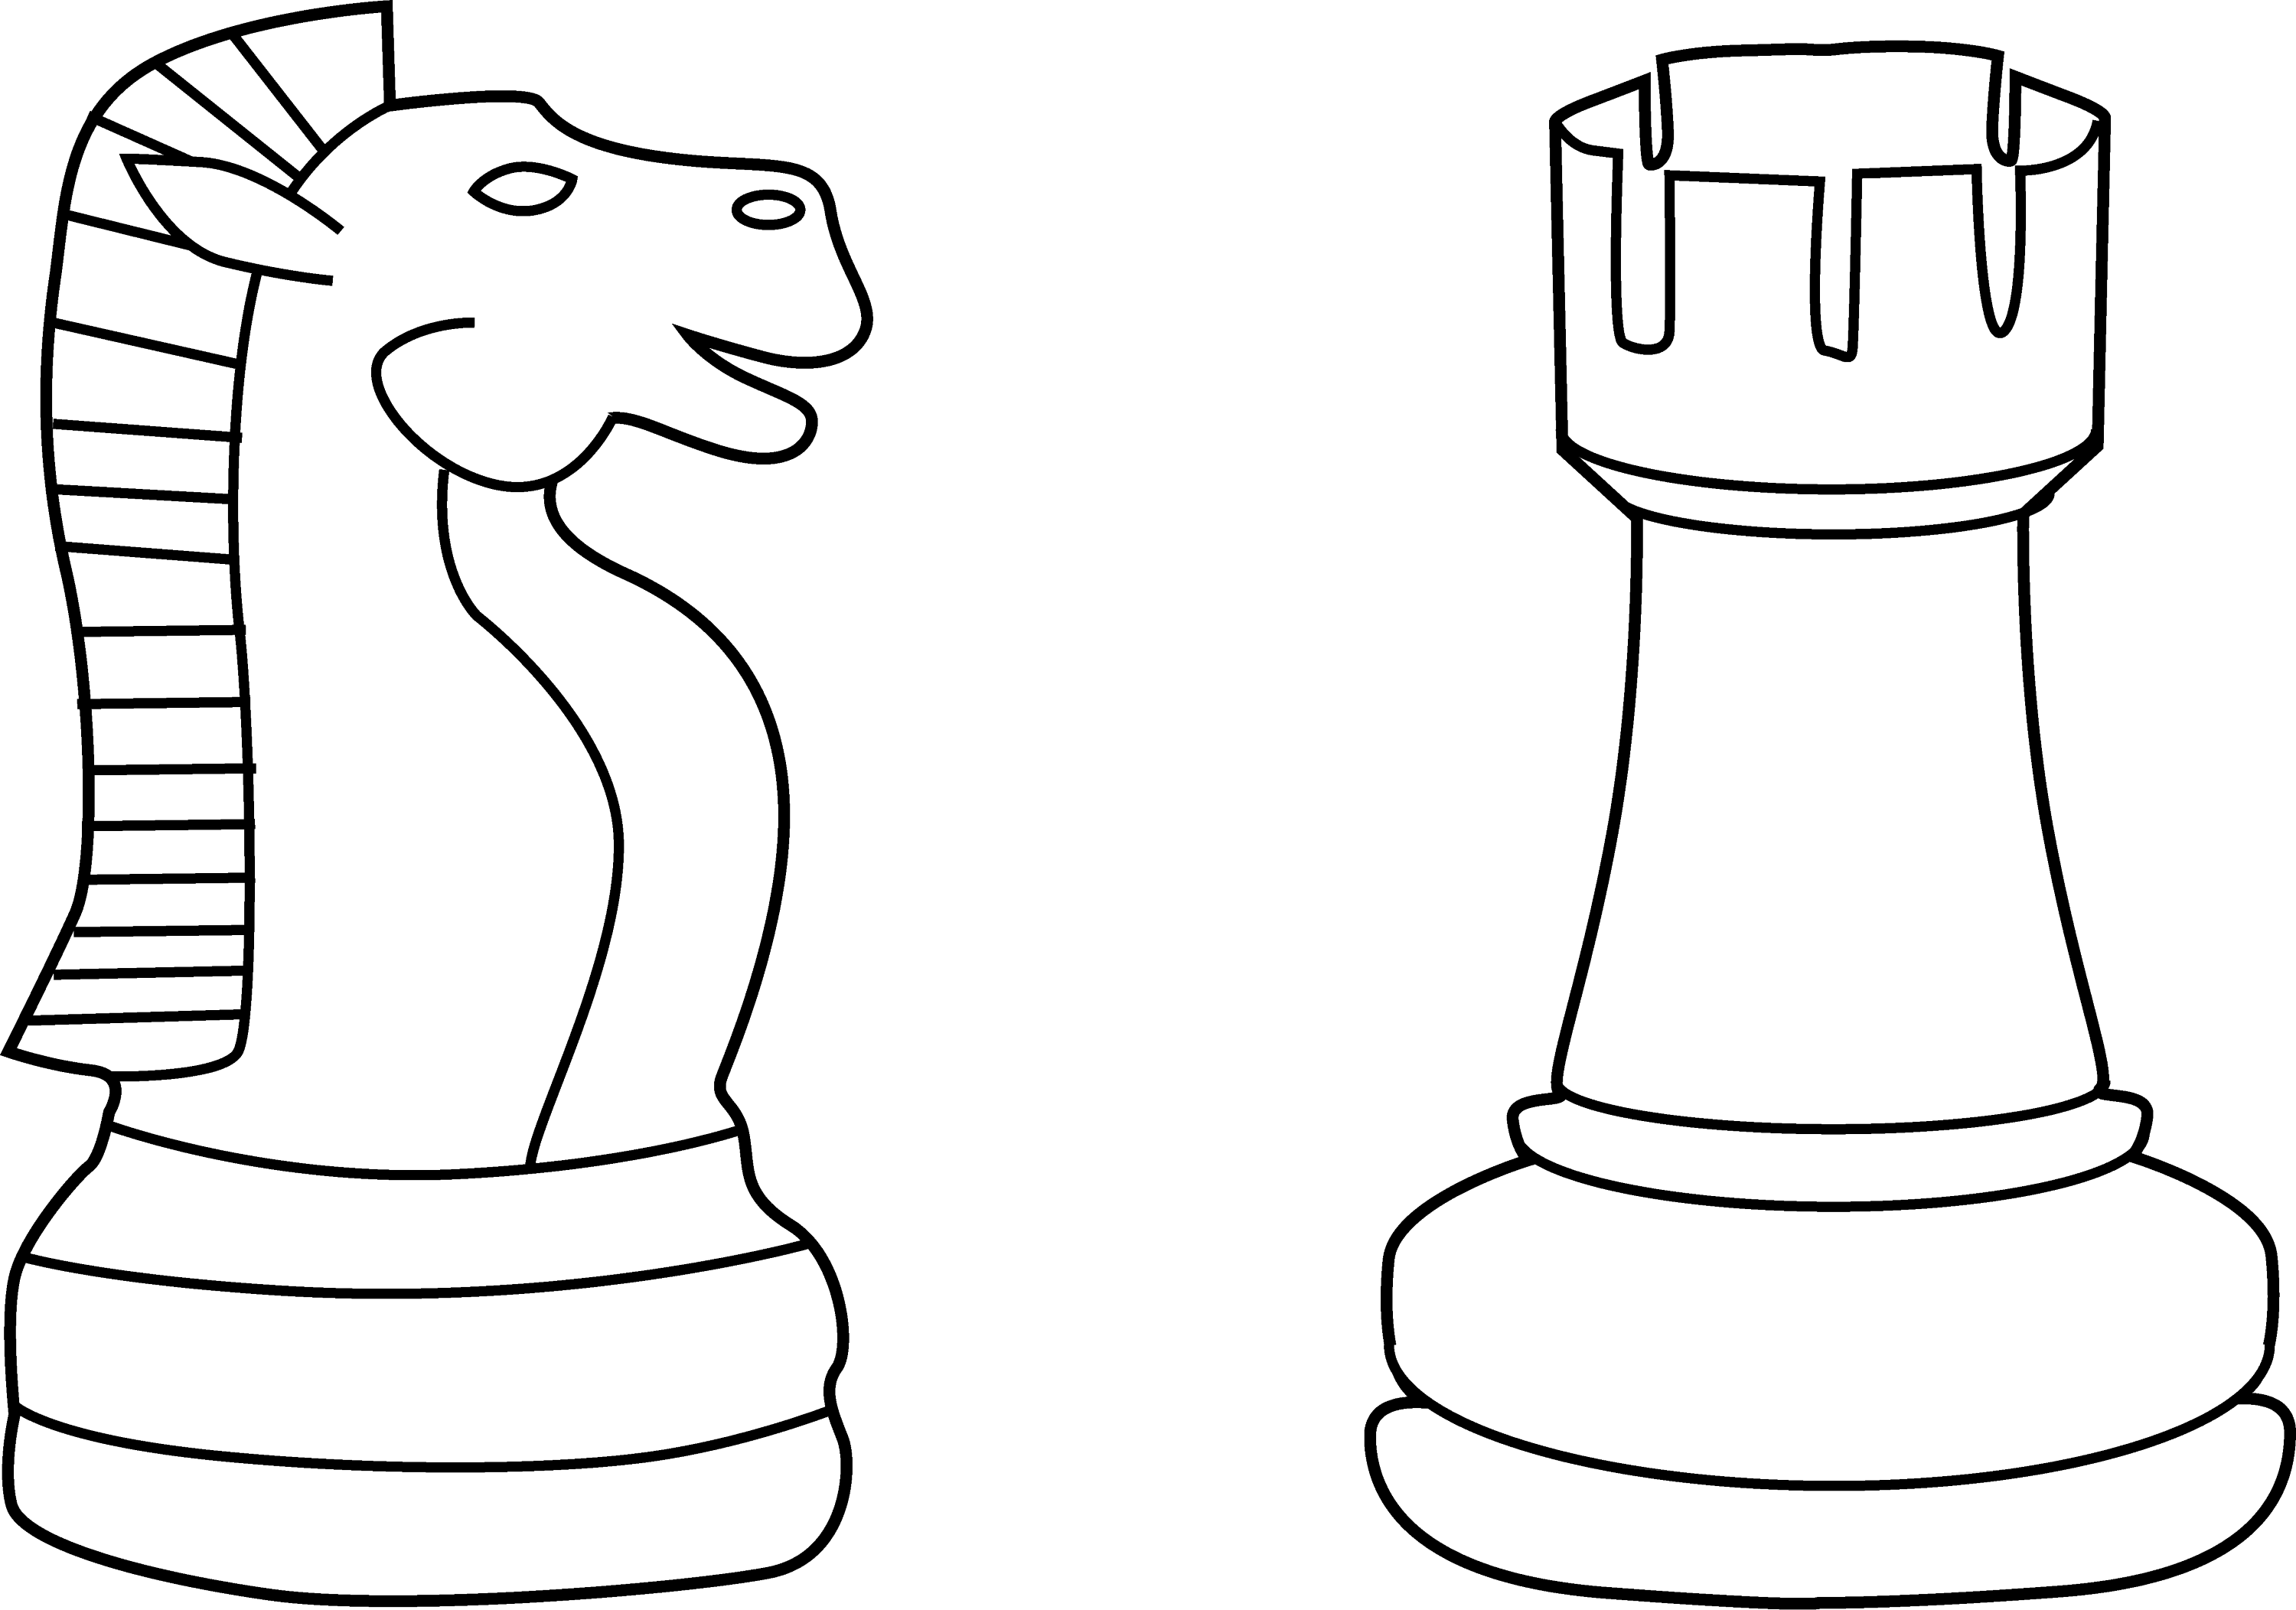 chess coloring pages | Two Chess Pieces Line Art - Free Clip Art